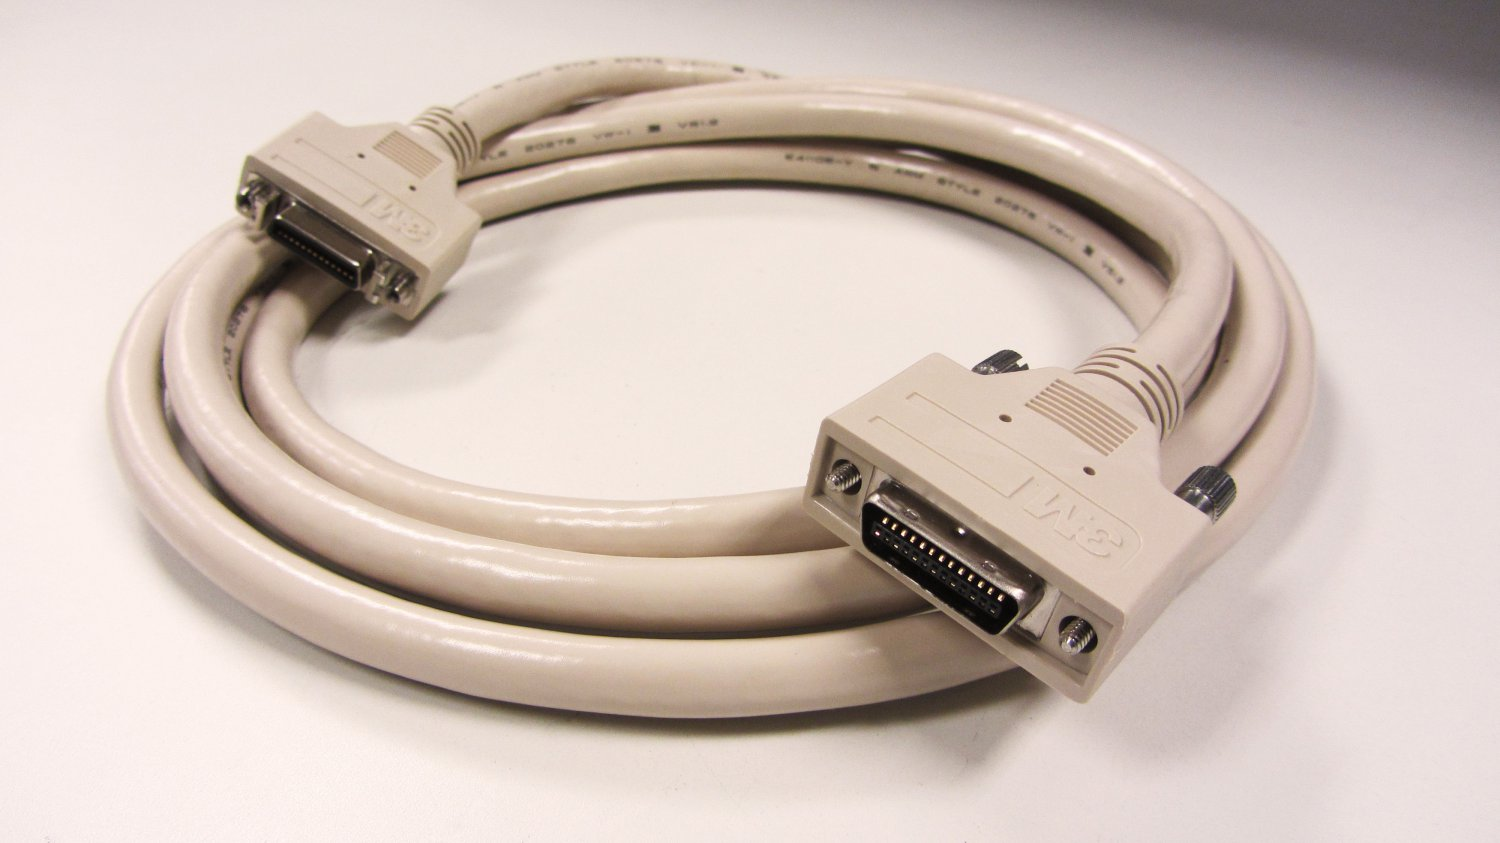 3M Mini Delta Ribbon (MDR) 26 Male to Female 1W226-TZLB-250-0LC Cable, 2.5 Meters